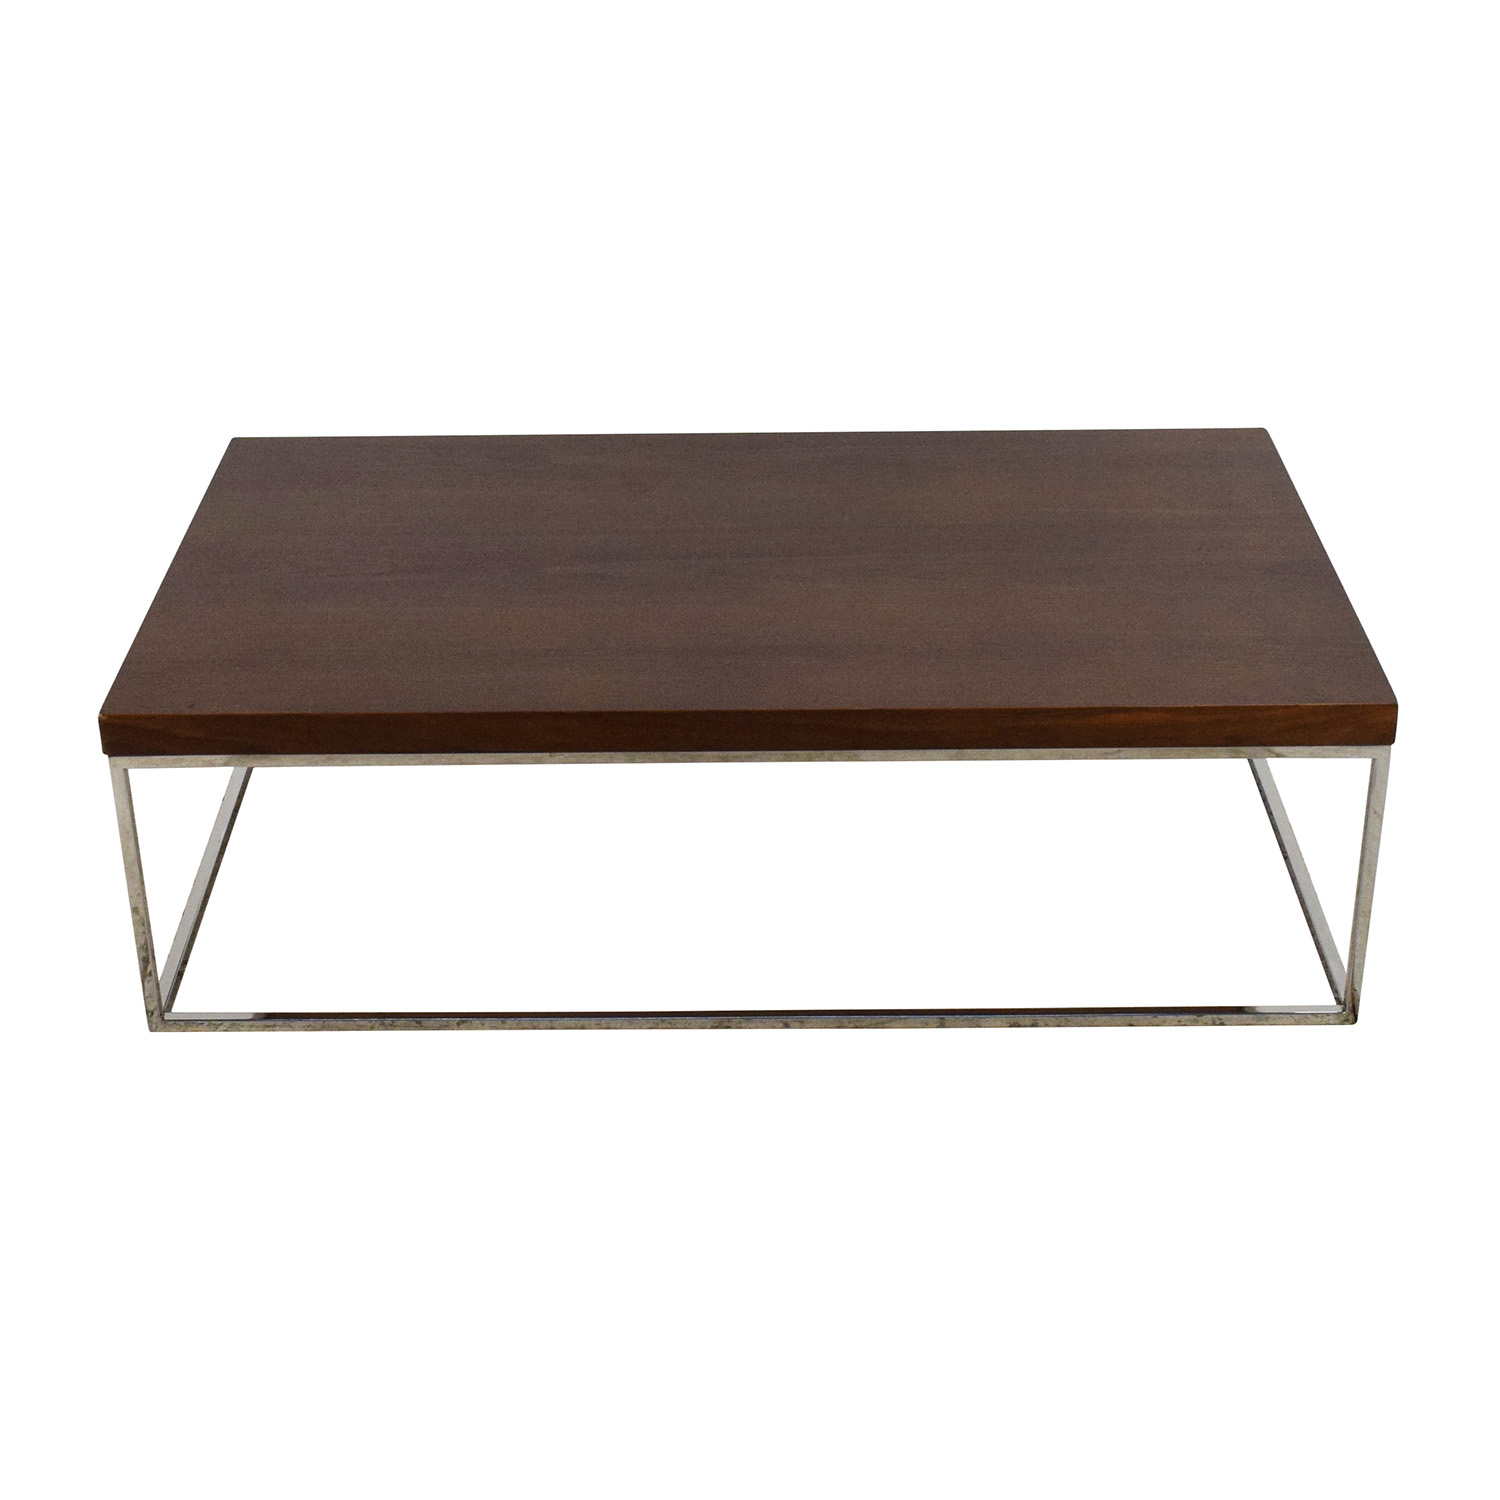 West Elm West Elm Copenhagen Coffee Table nyc